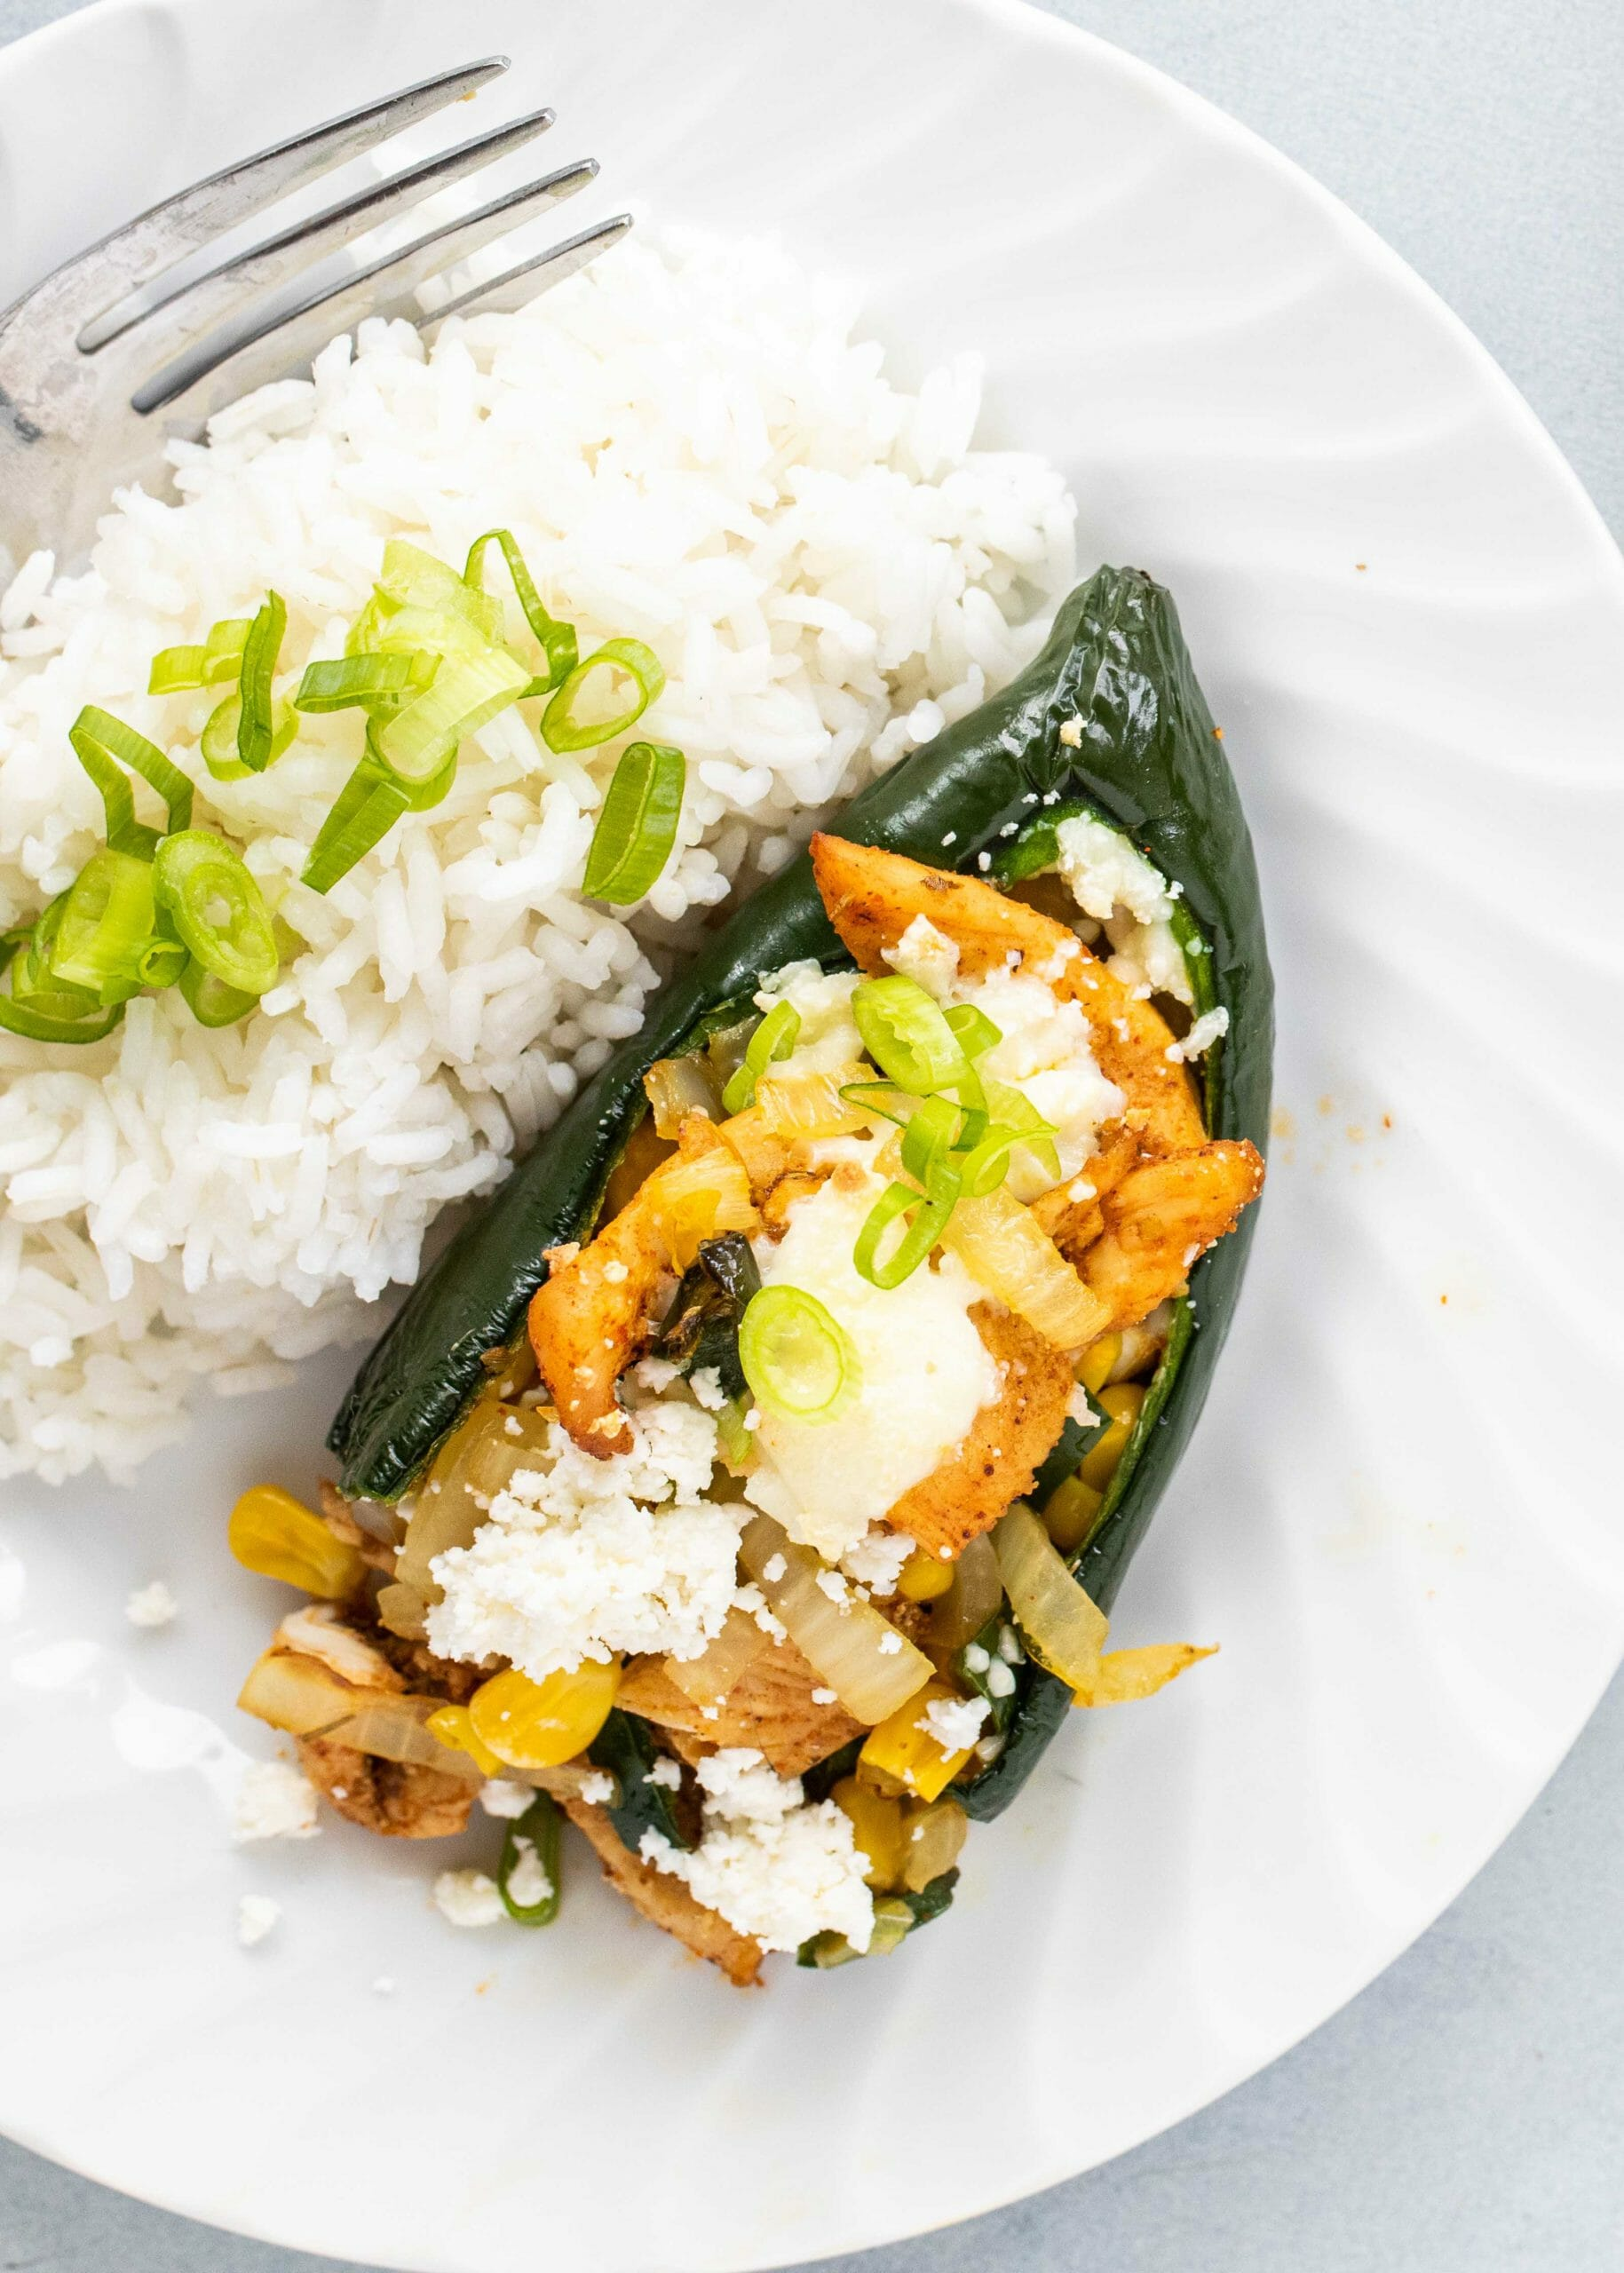 Mexican stuffed peppers with sliced chicken, onions and peppers inside a poblano pepper. A side of white rice and a fork are on the plate next to the pepper.